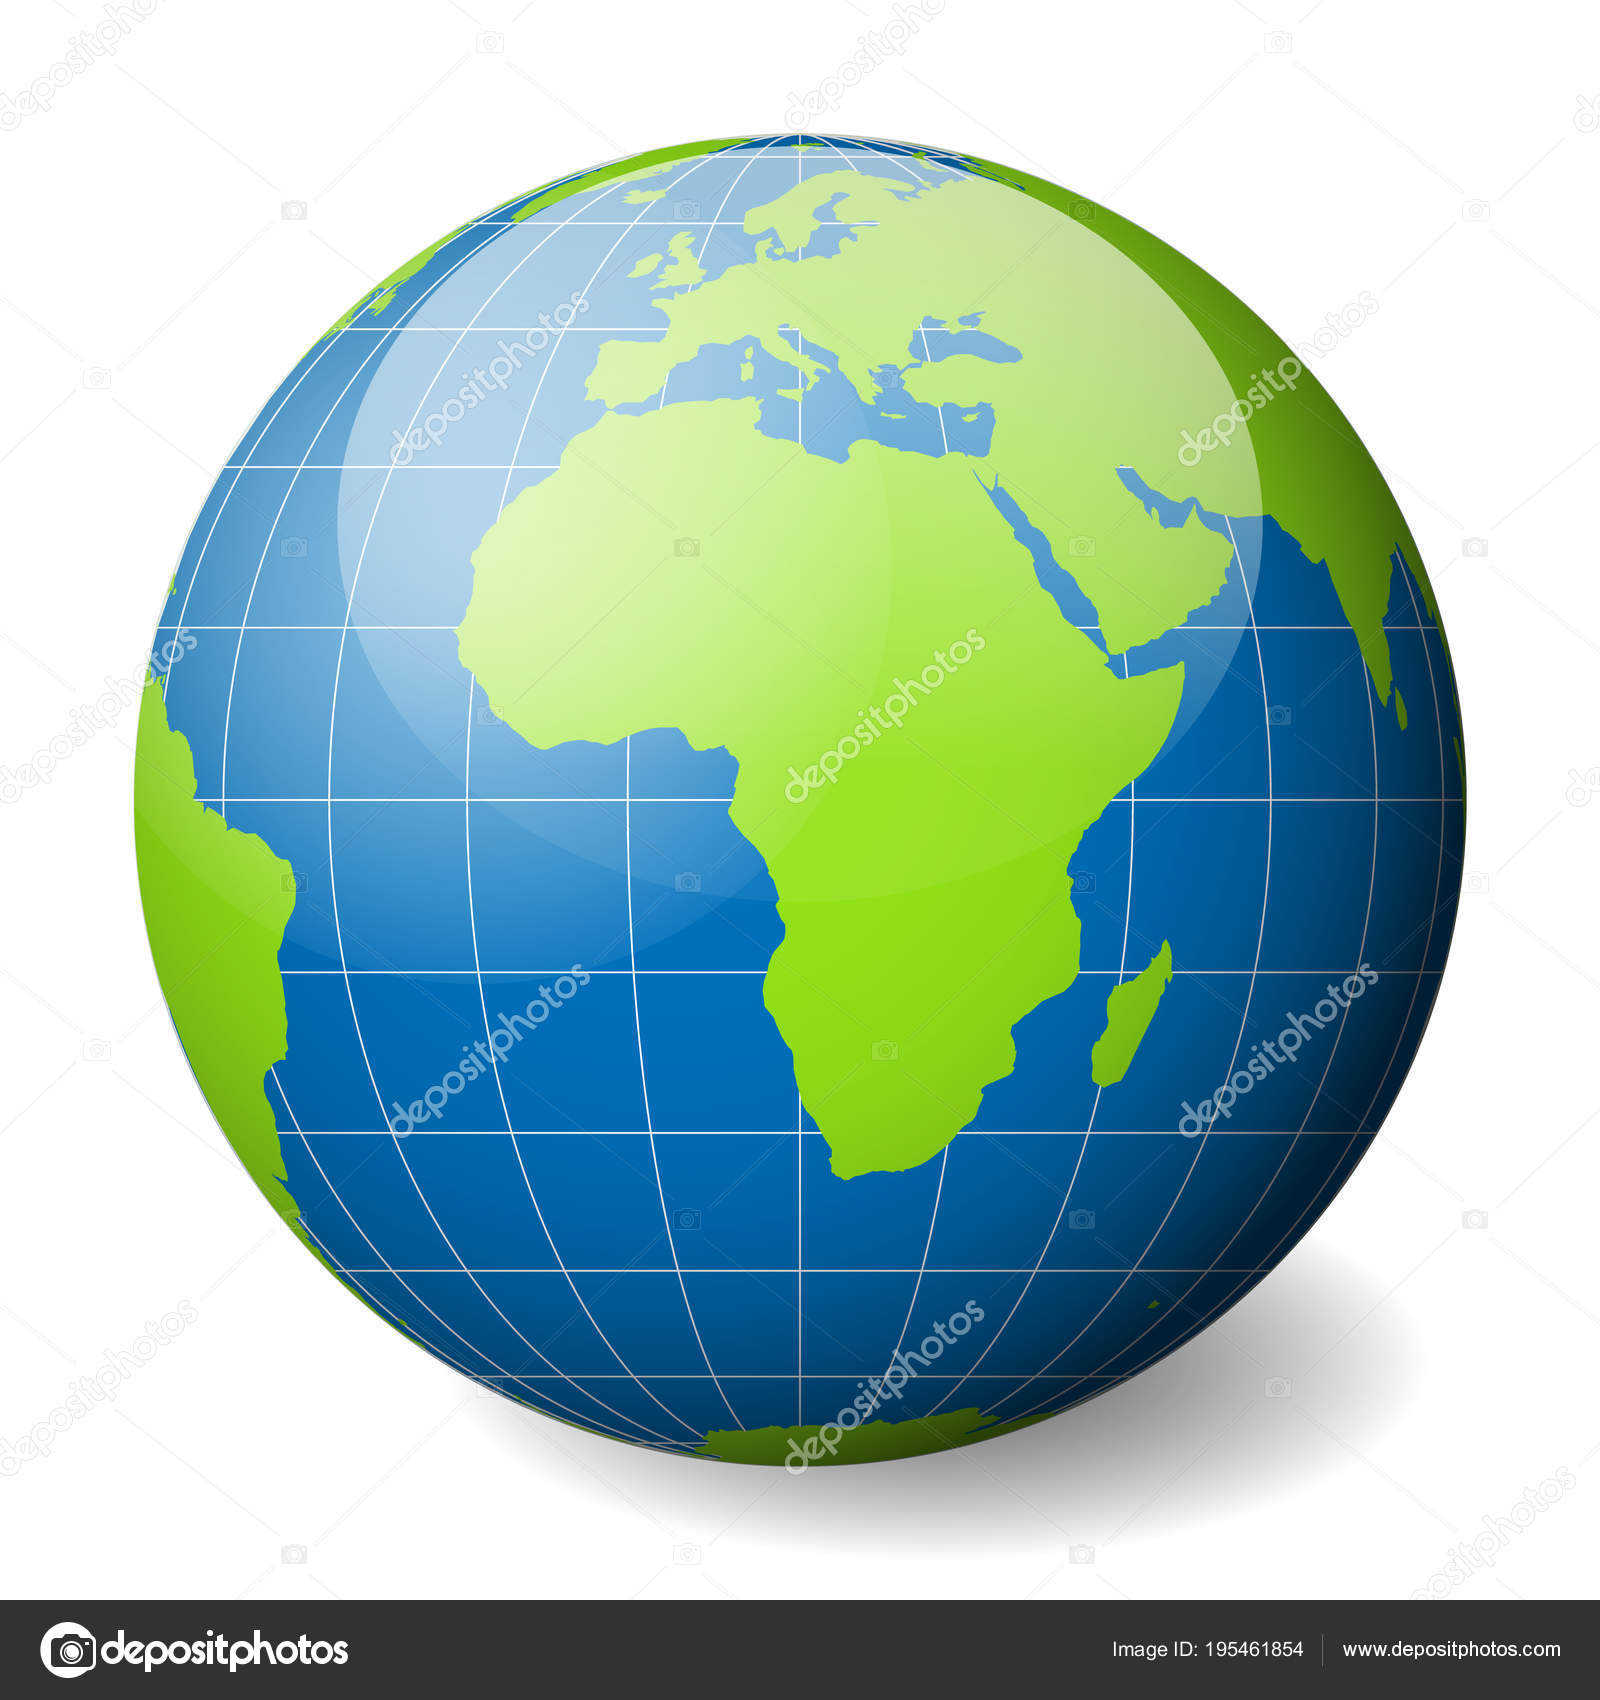 Earth Globe With Green World Map And Blue Seas And Oceans Focused On